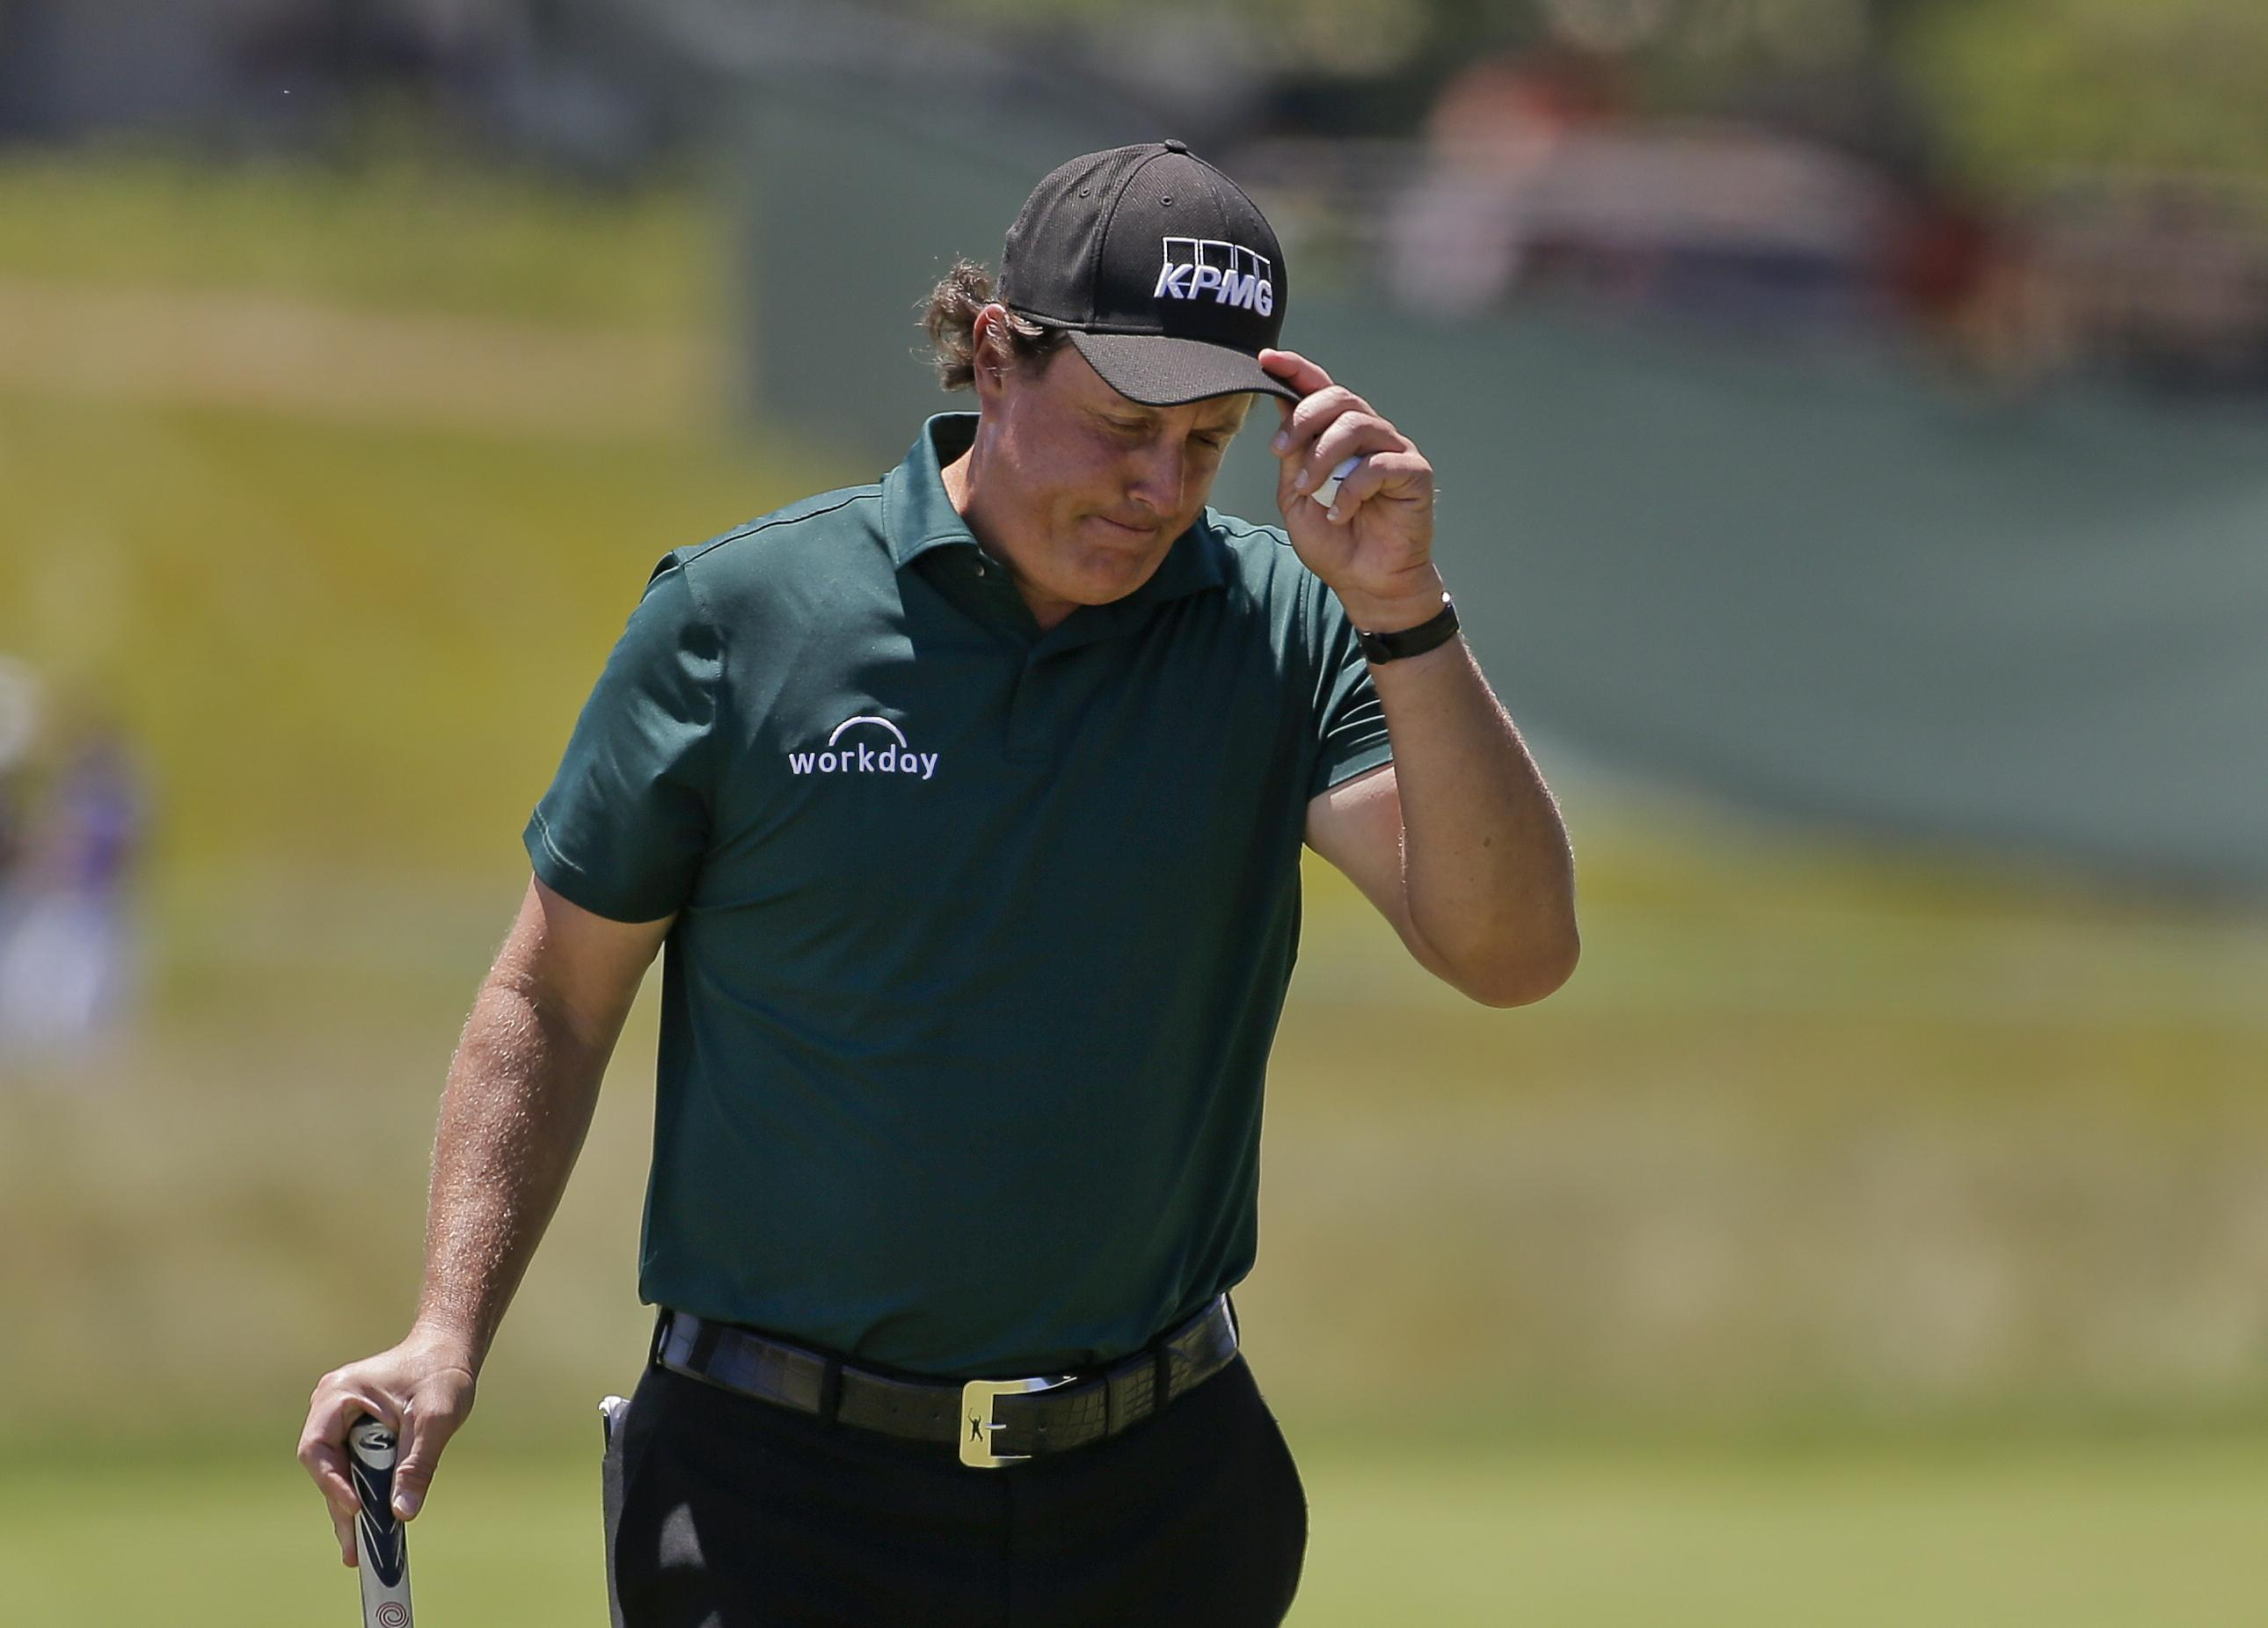 Mickelson will be hoping for better fortunes at the US Open